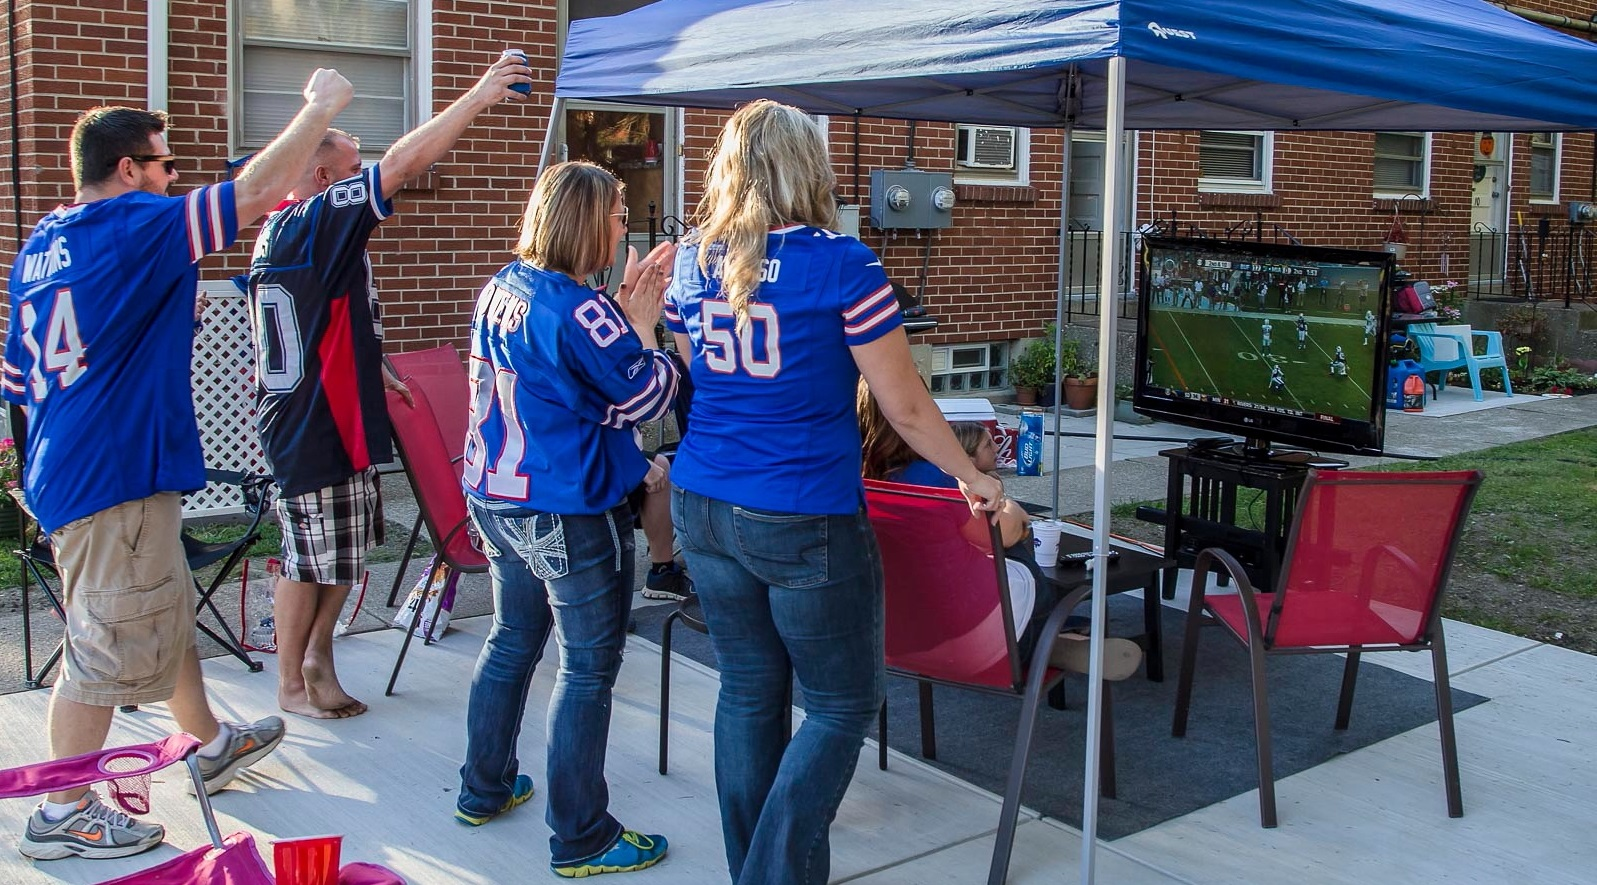 Bills fans watch the game on TV outside on North Davis Road. (Don Nieman/Special to The News)